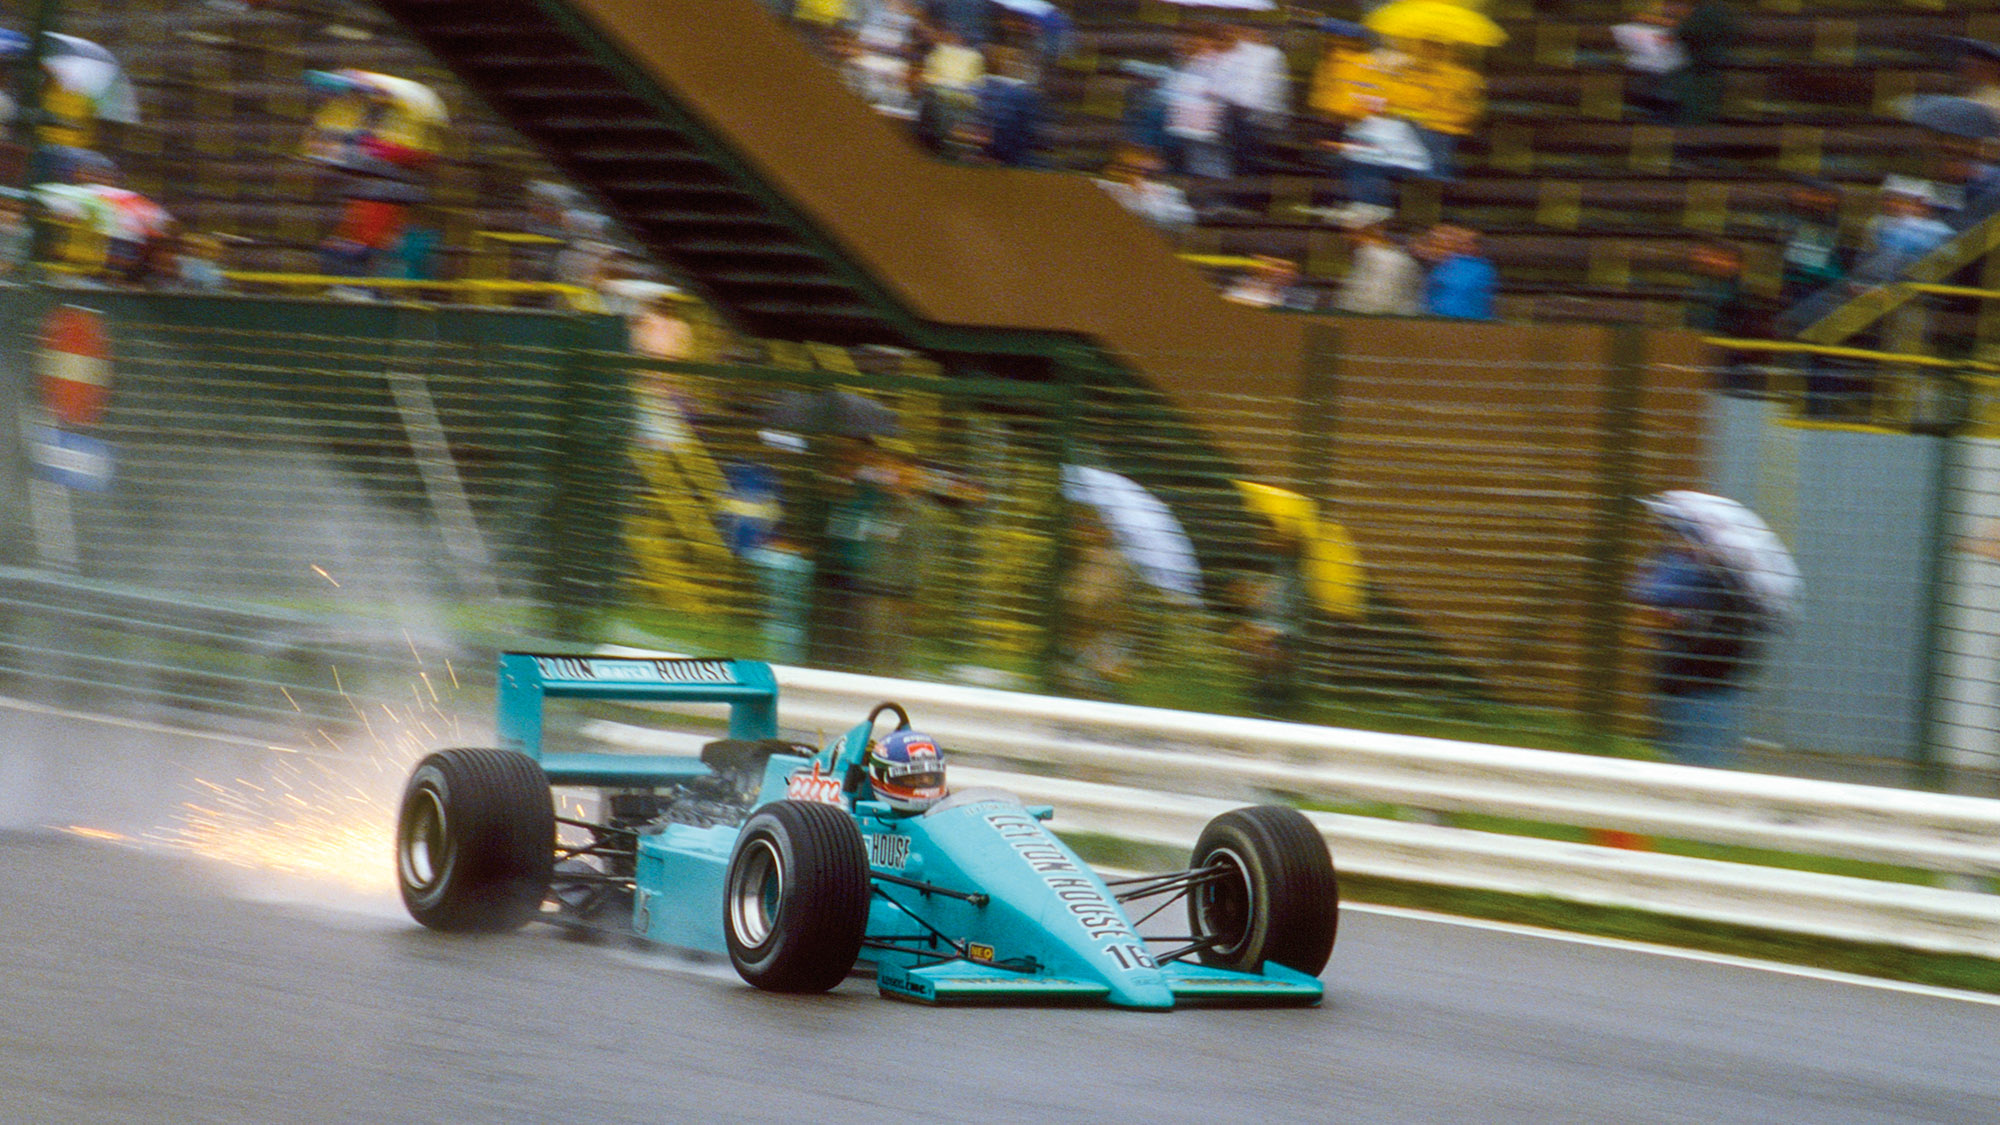 Sparks fly from Ivan Capelli's March 871 at the 1987 Austrian Grand prix